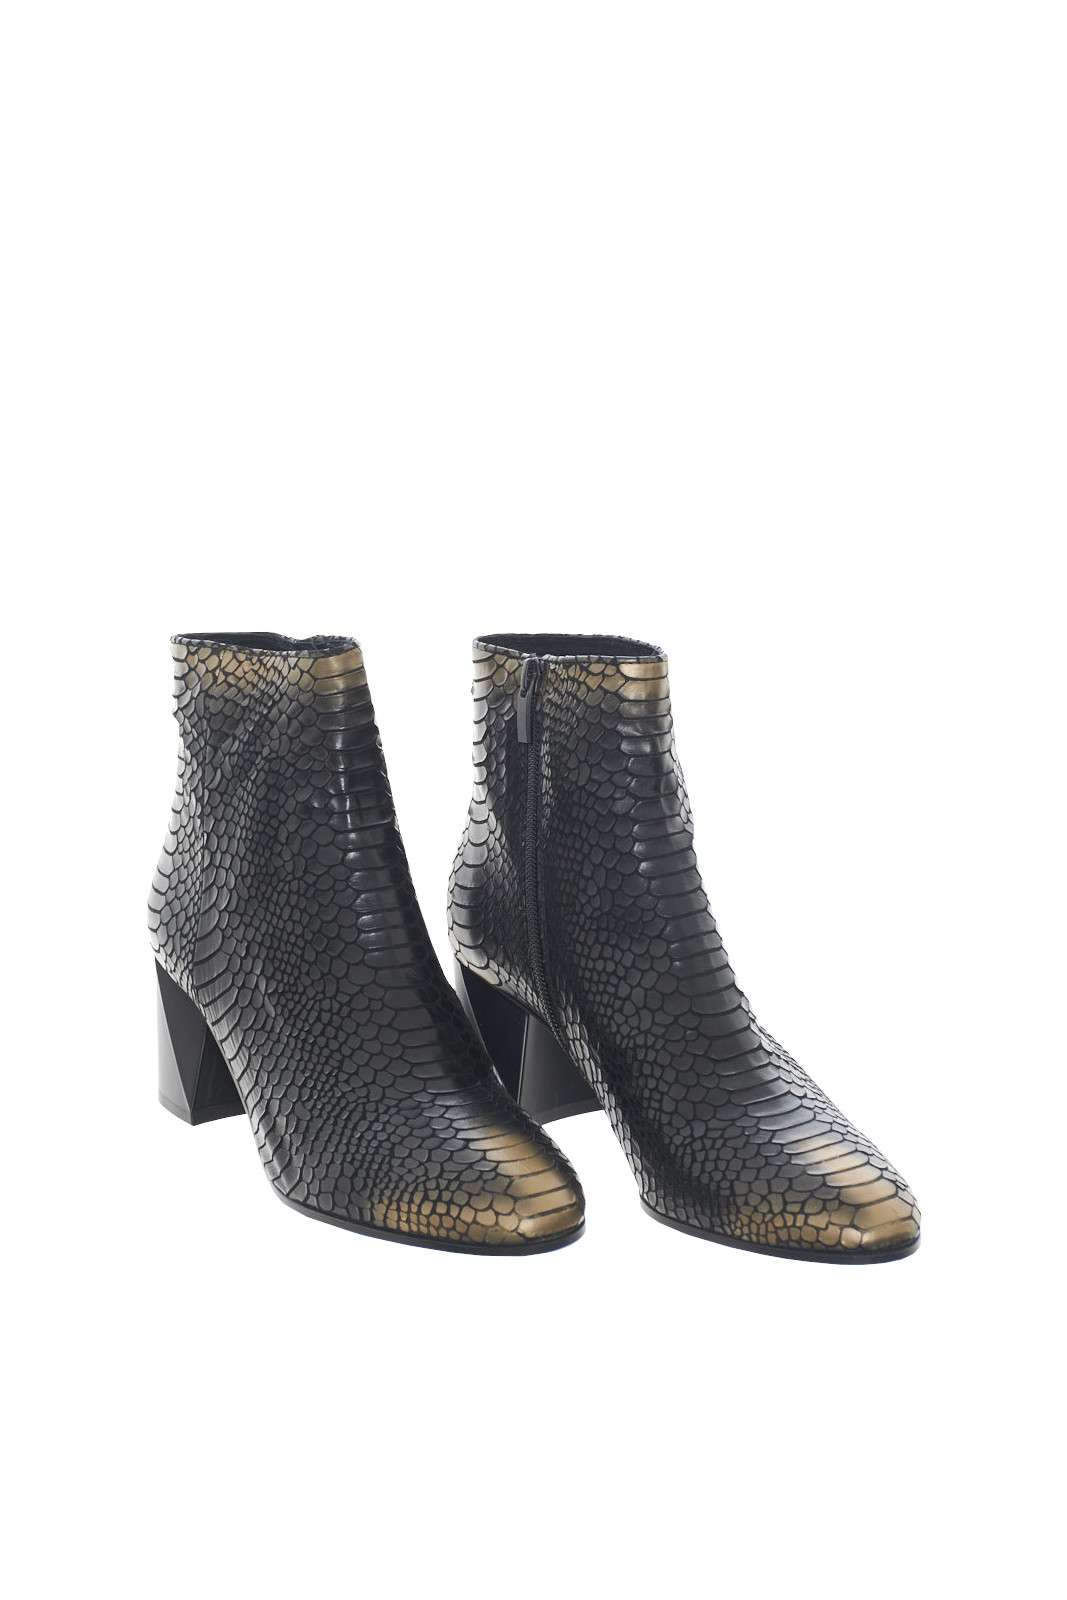 https://www.parmax.com/media/catalog/product/a/i/AI-outlet_parmax-tronchetto-donna-Etwob-BY0701X-D.jpg